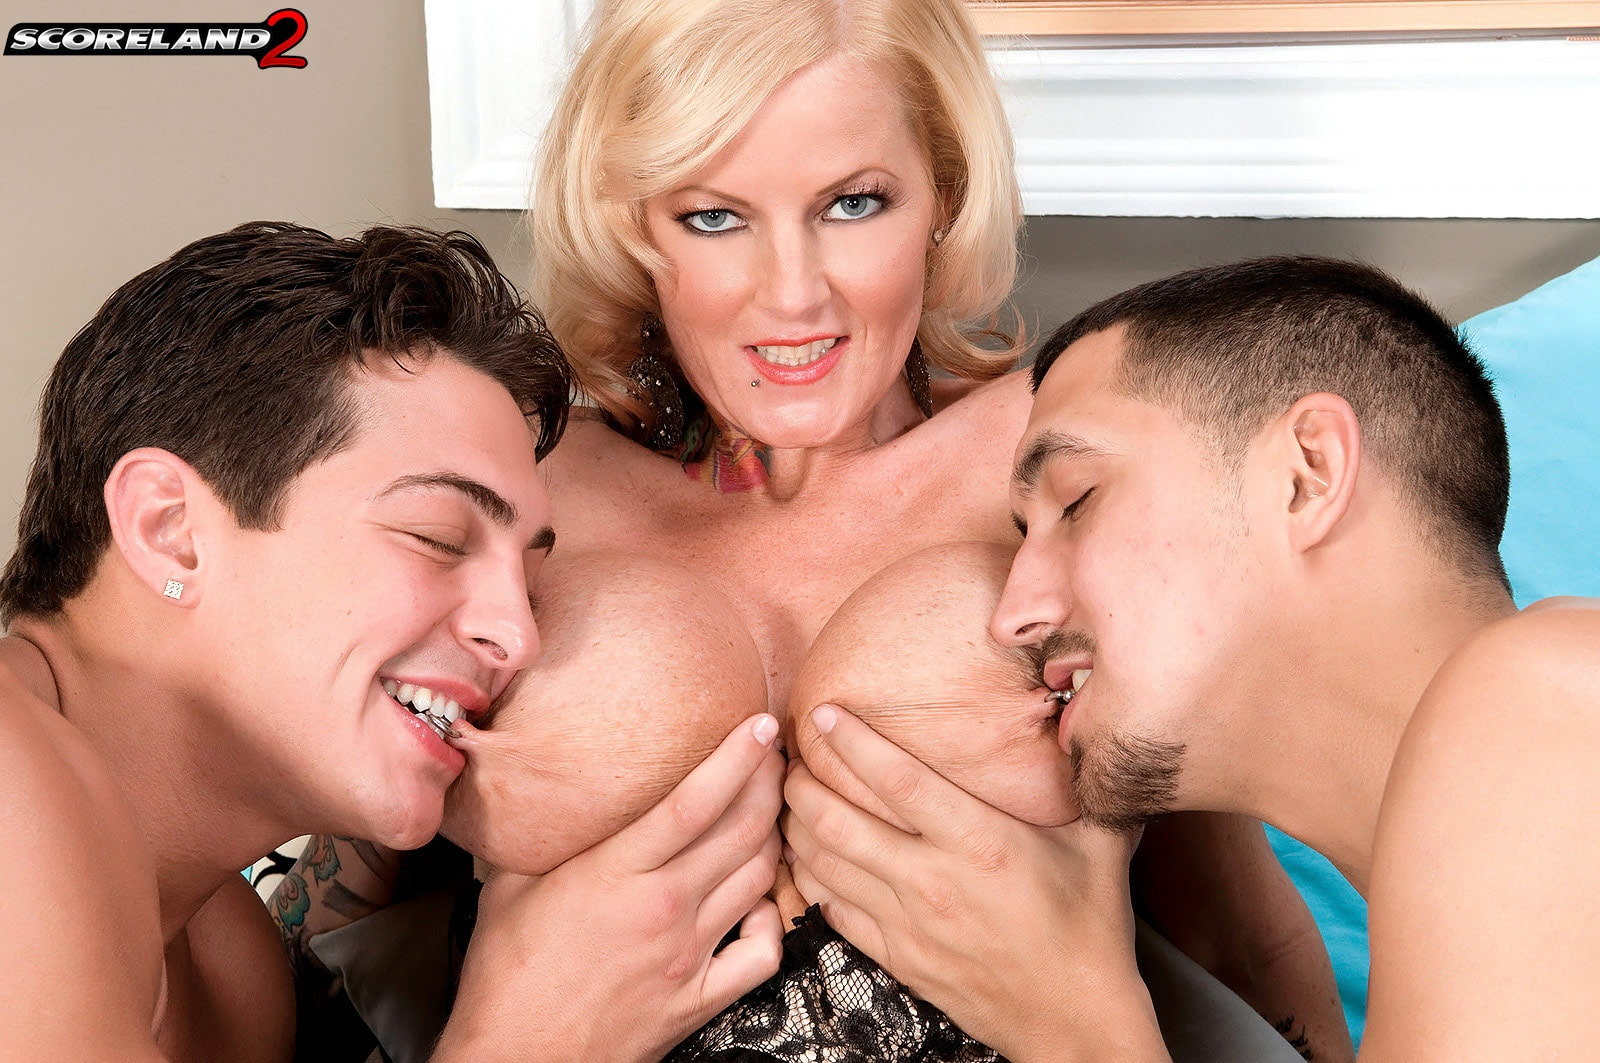 Score 'Too Much Woman For Just One Man' starring Sabrina Linn (Photo 6)